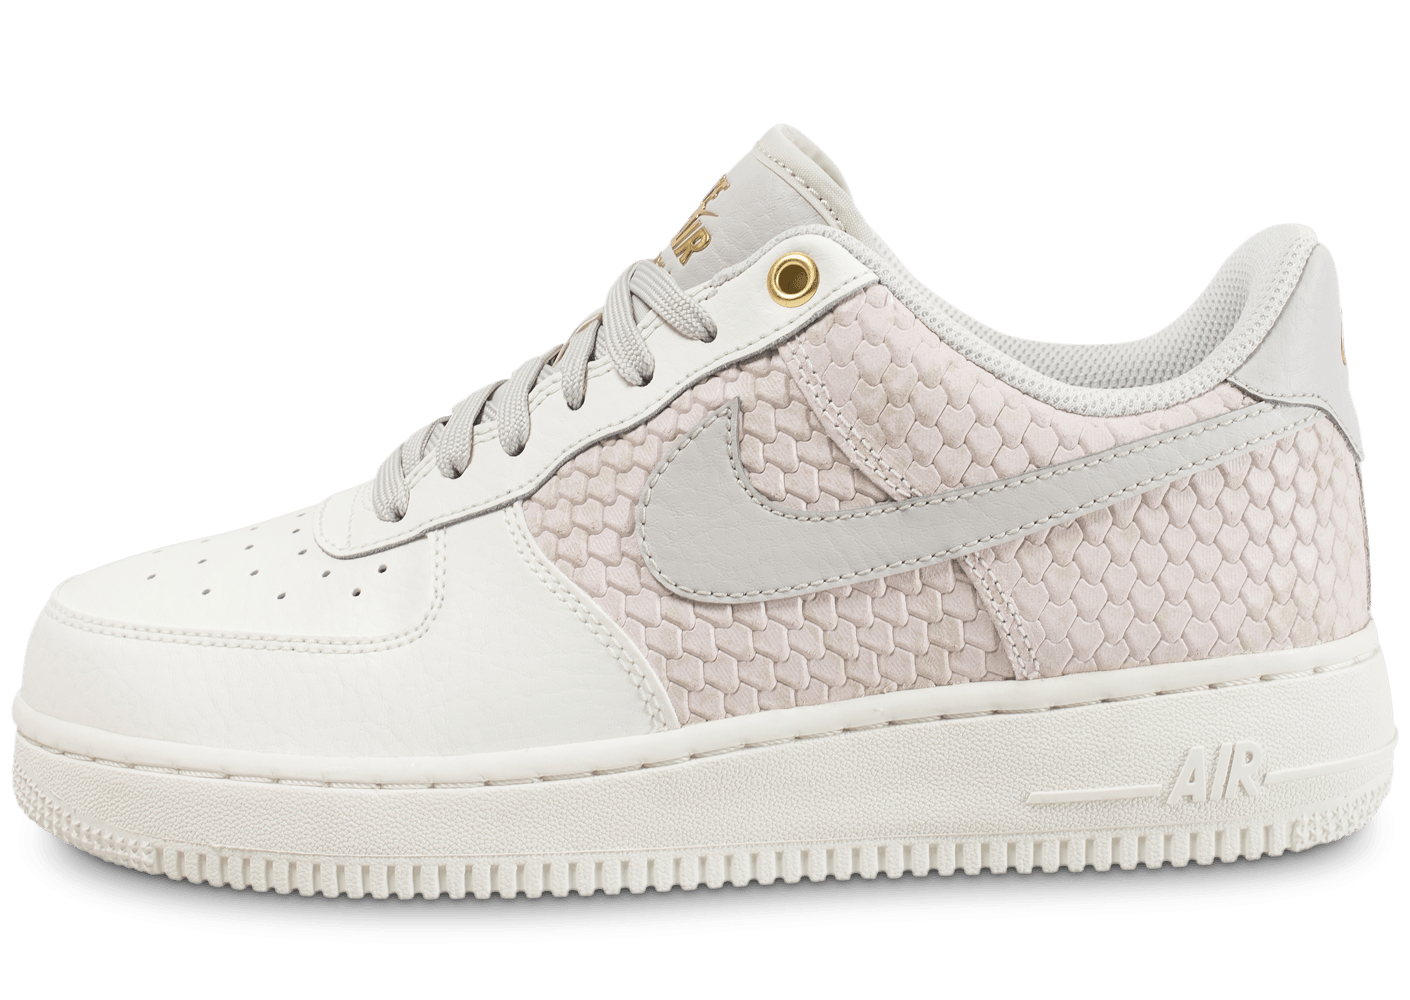 air force nike one nike air force one low femme elite blanche on blanche magasin. Black Bedroom Furniture Sets. Home Design Ideas